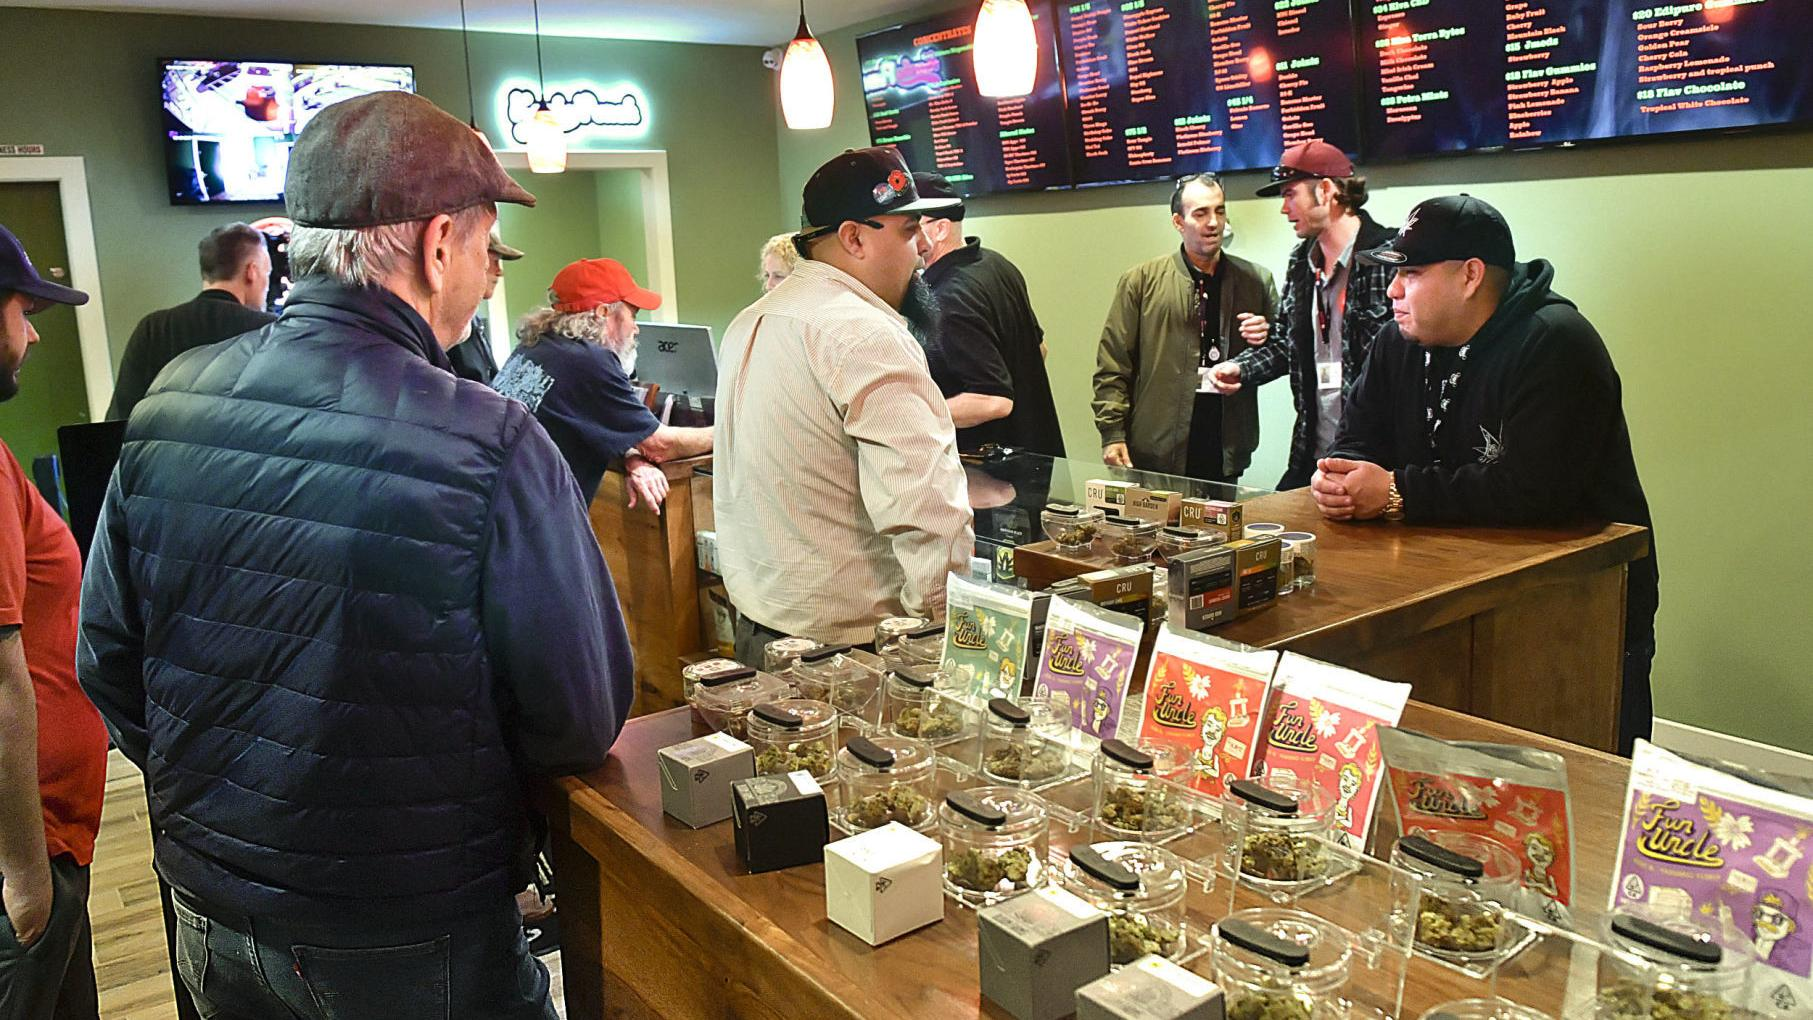 Historic day: Cannabis dispensary opens in Lompoc, becoming first in Santa Barbara County